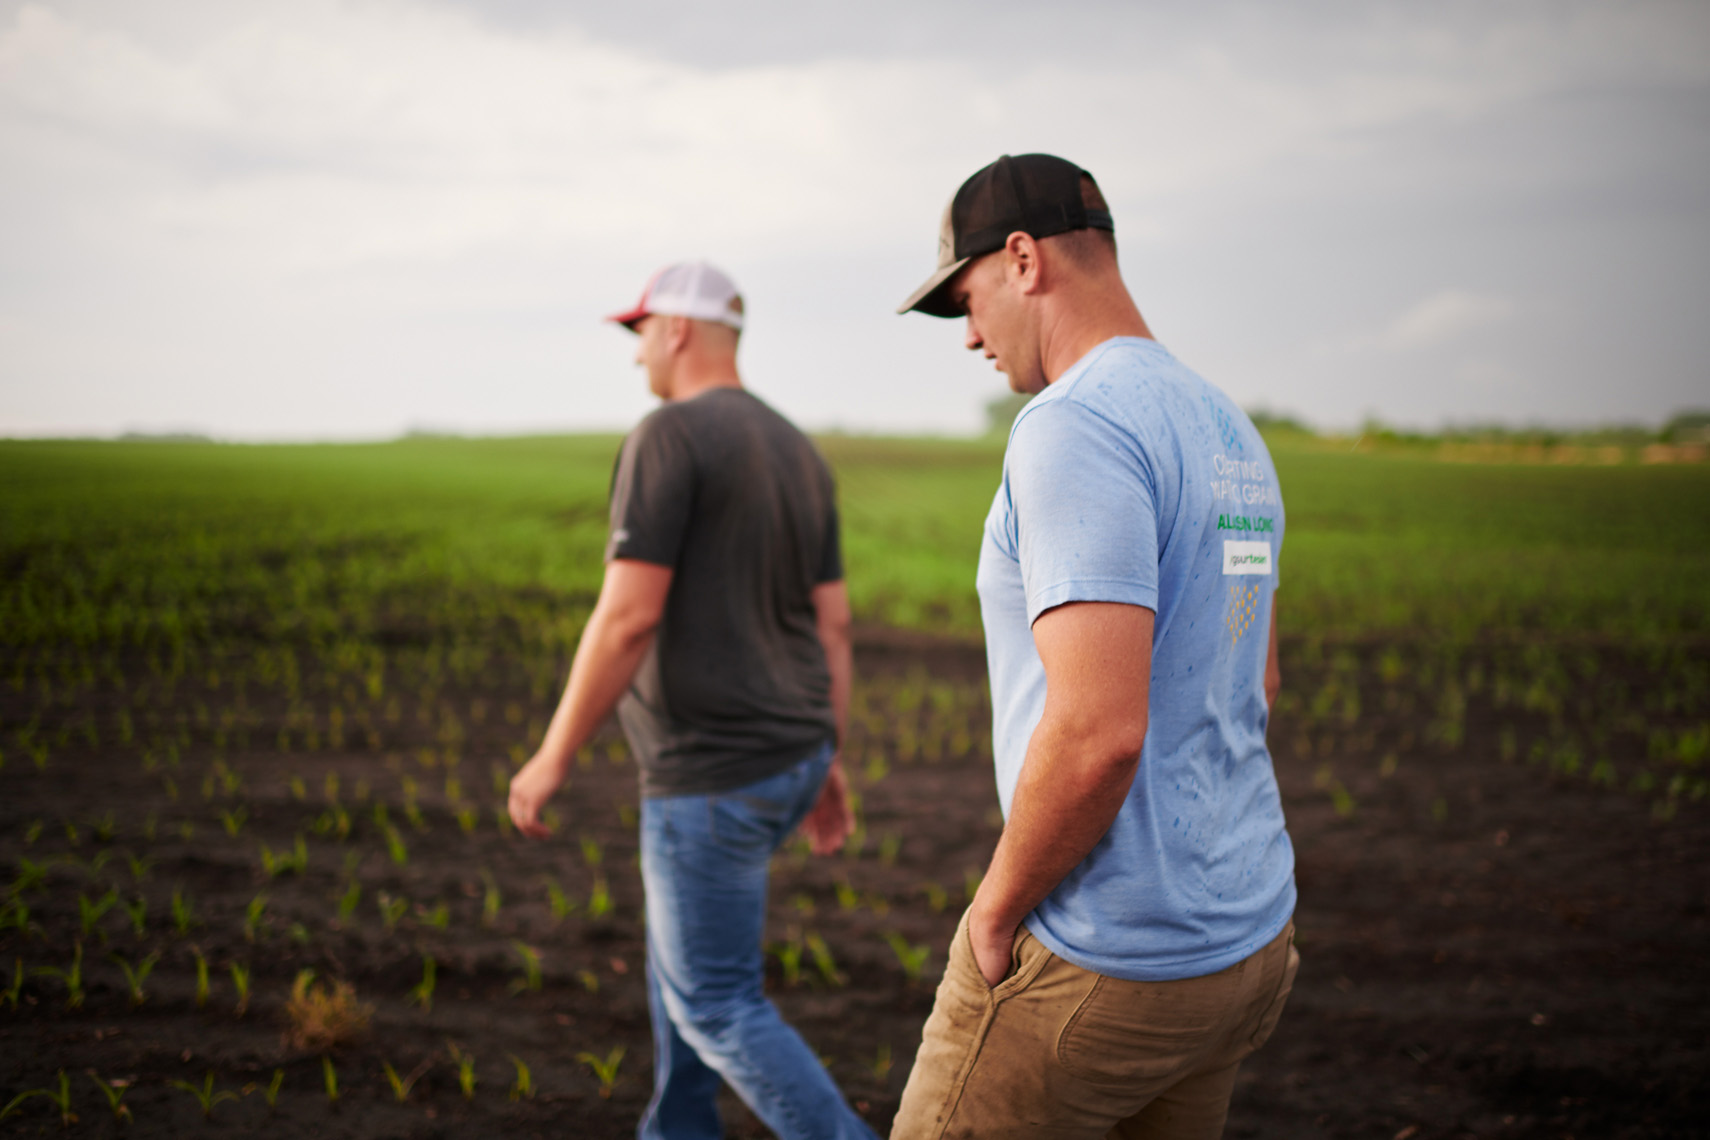 Farmers inspecting early corn field lifestyle